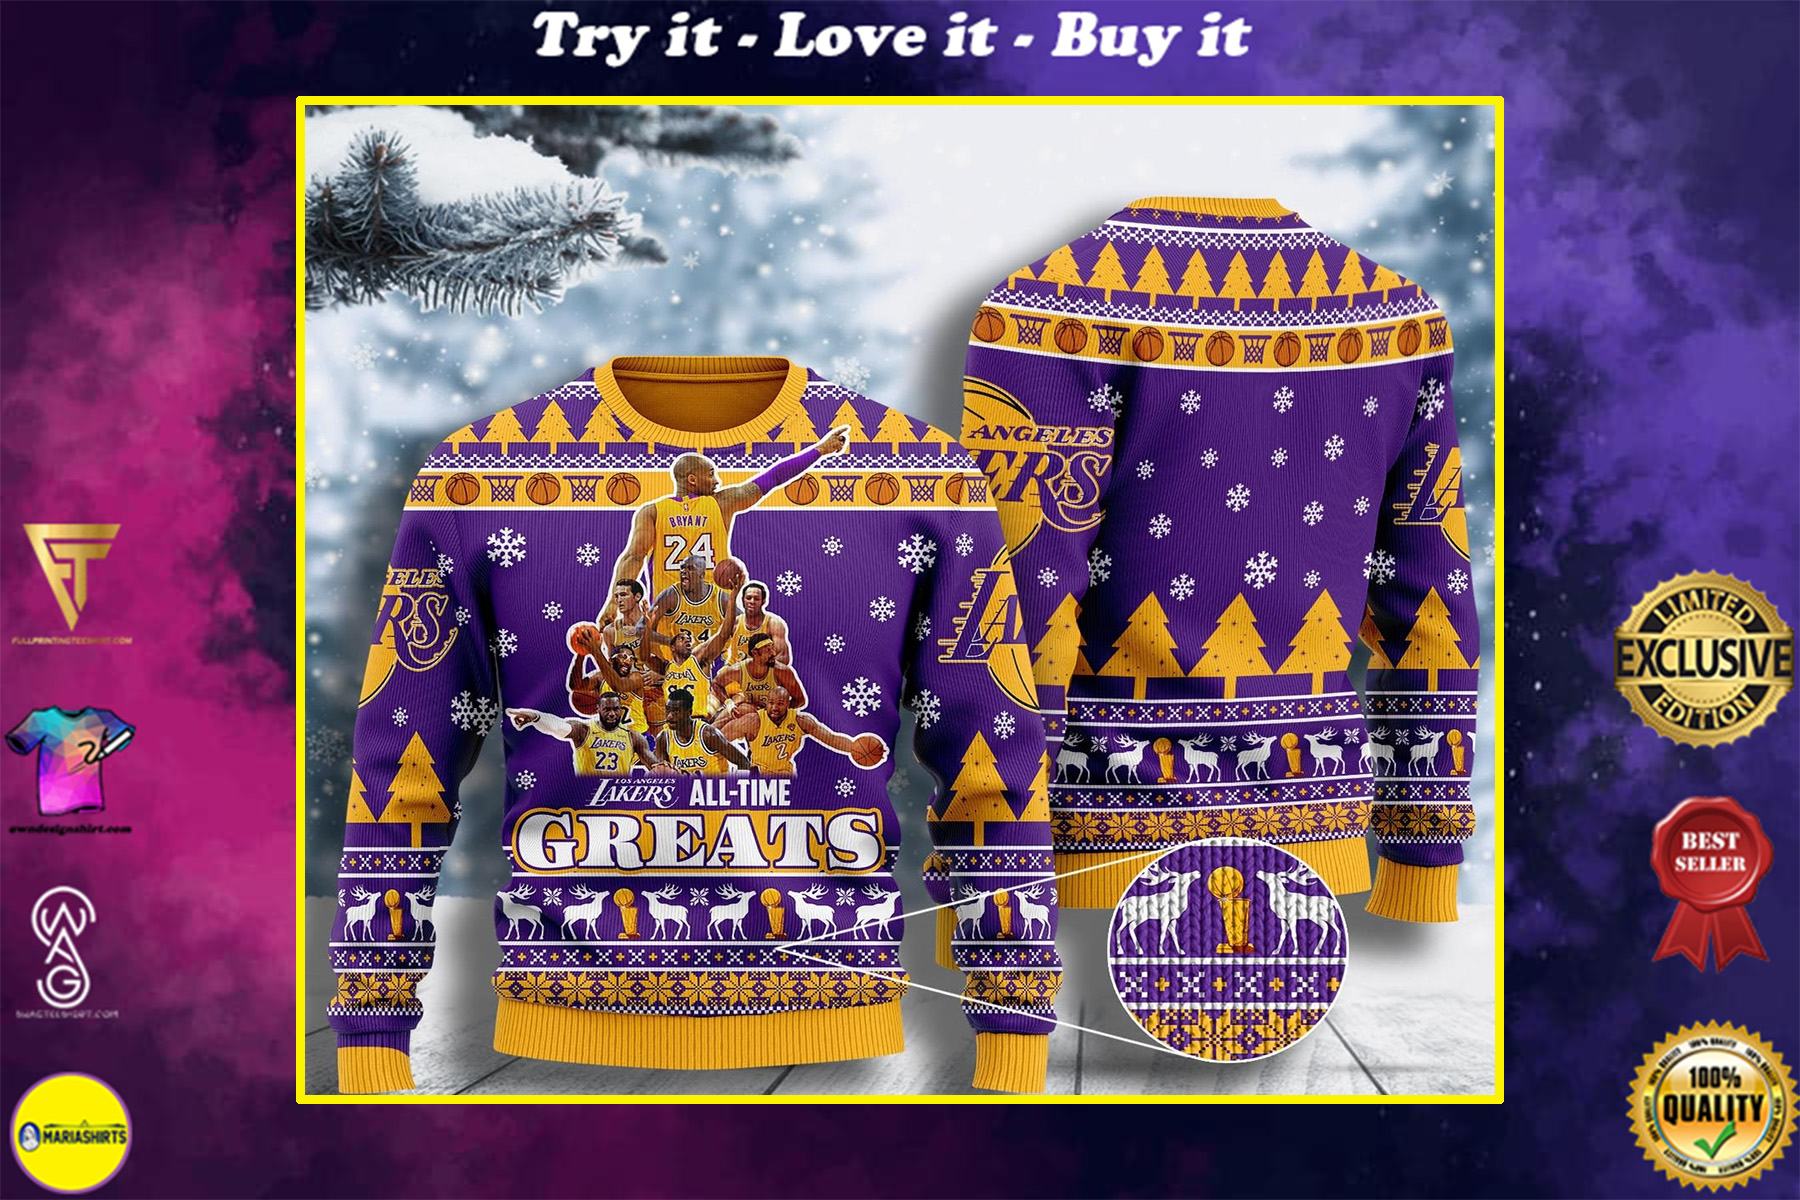 [special edition] los angeles lakers all-time greats ugly christmas sweater - maria